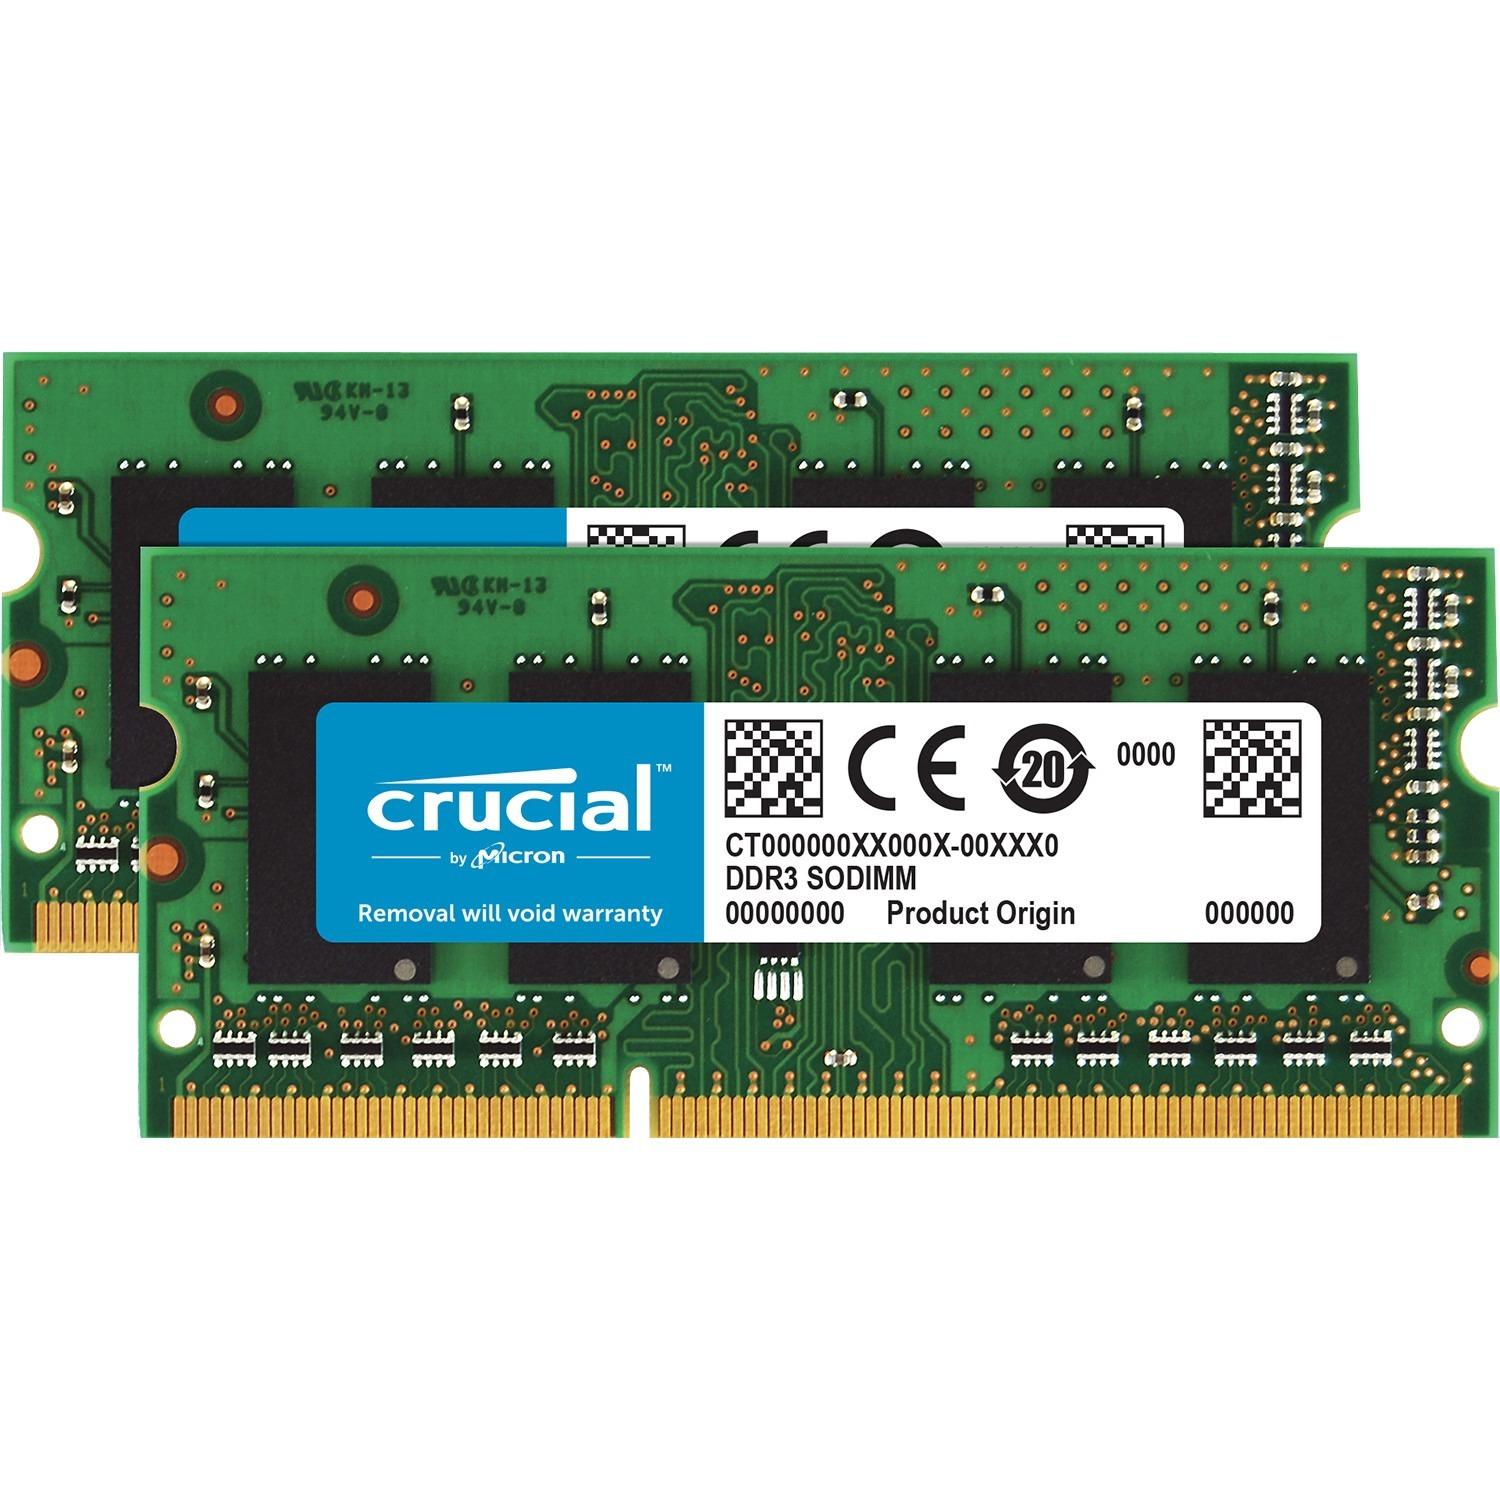 Crucial RAM Module - 16 GB 2 x 8 GB - DDR3-1600/PC3-12800 DDR3 SDRAM - CL11 - 1.35 V - Non-ECC - Unbuffered - 204-pin - SoDIMM